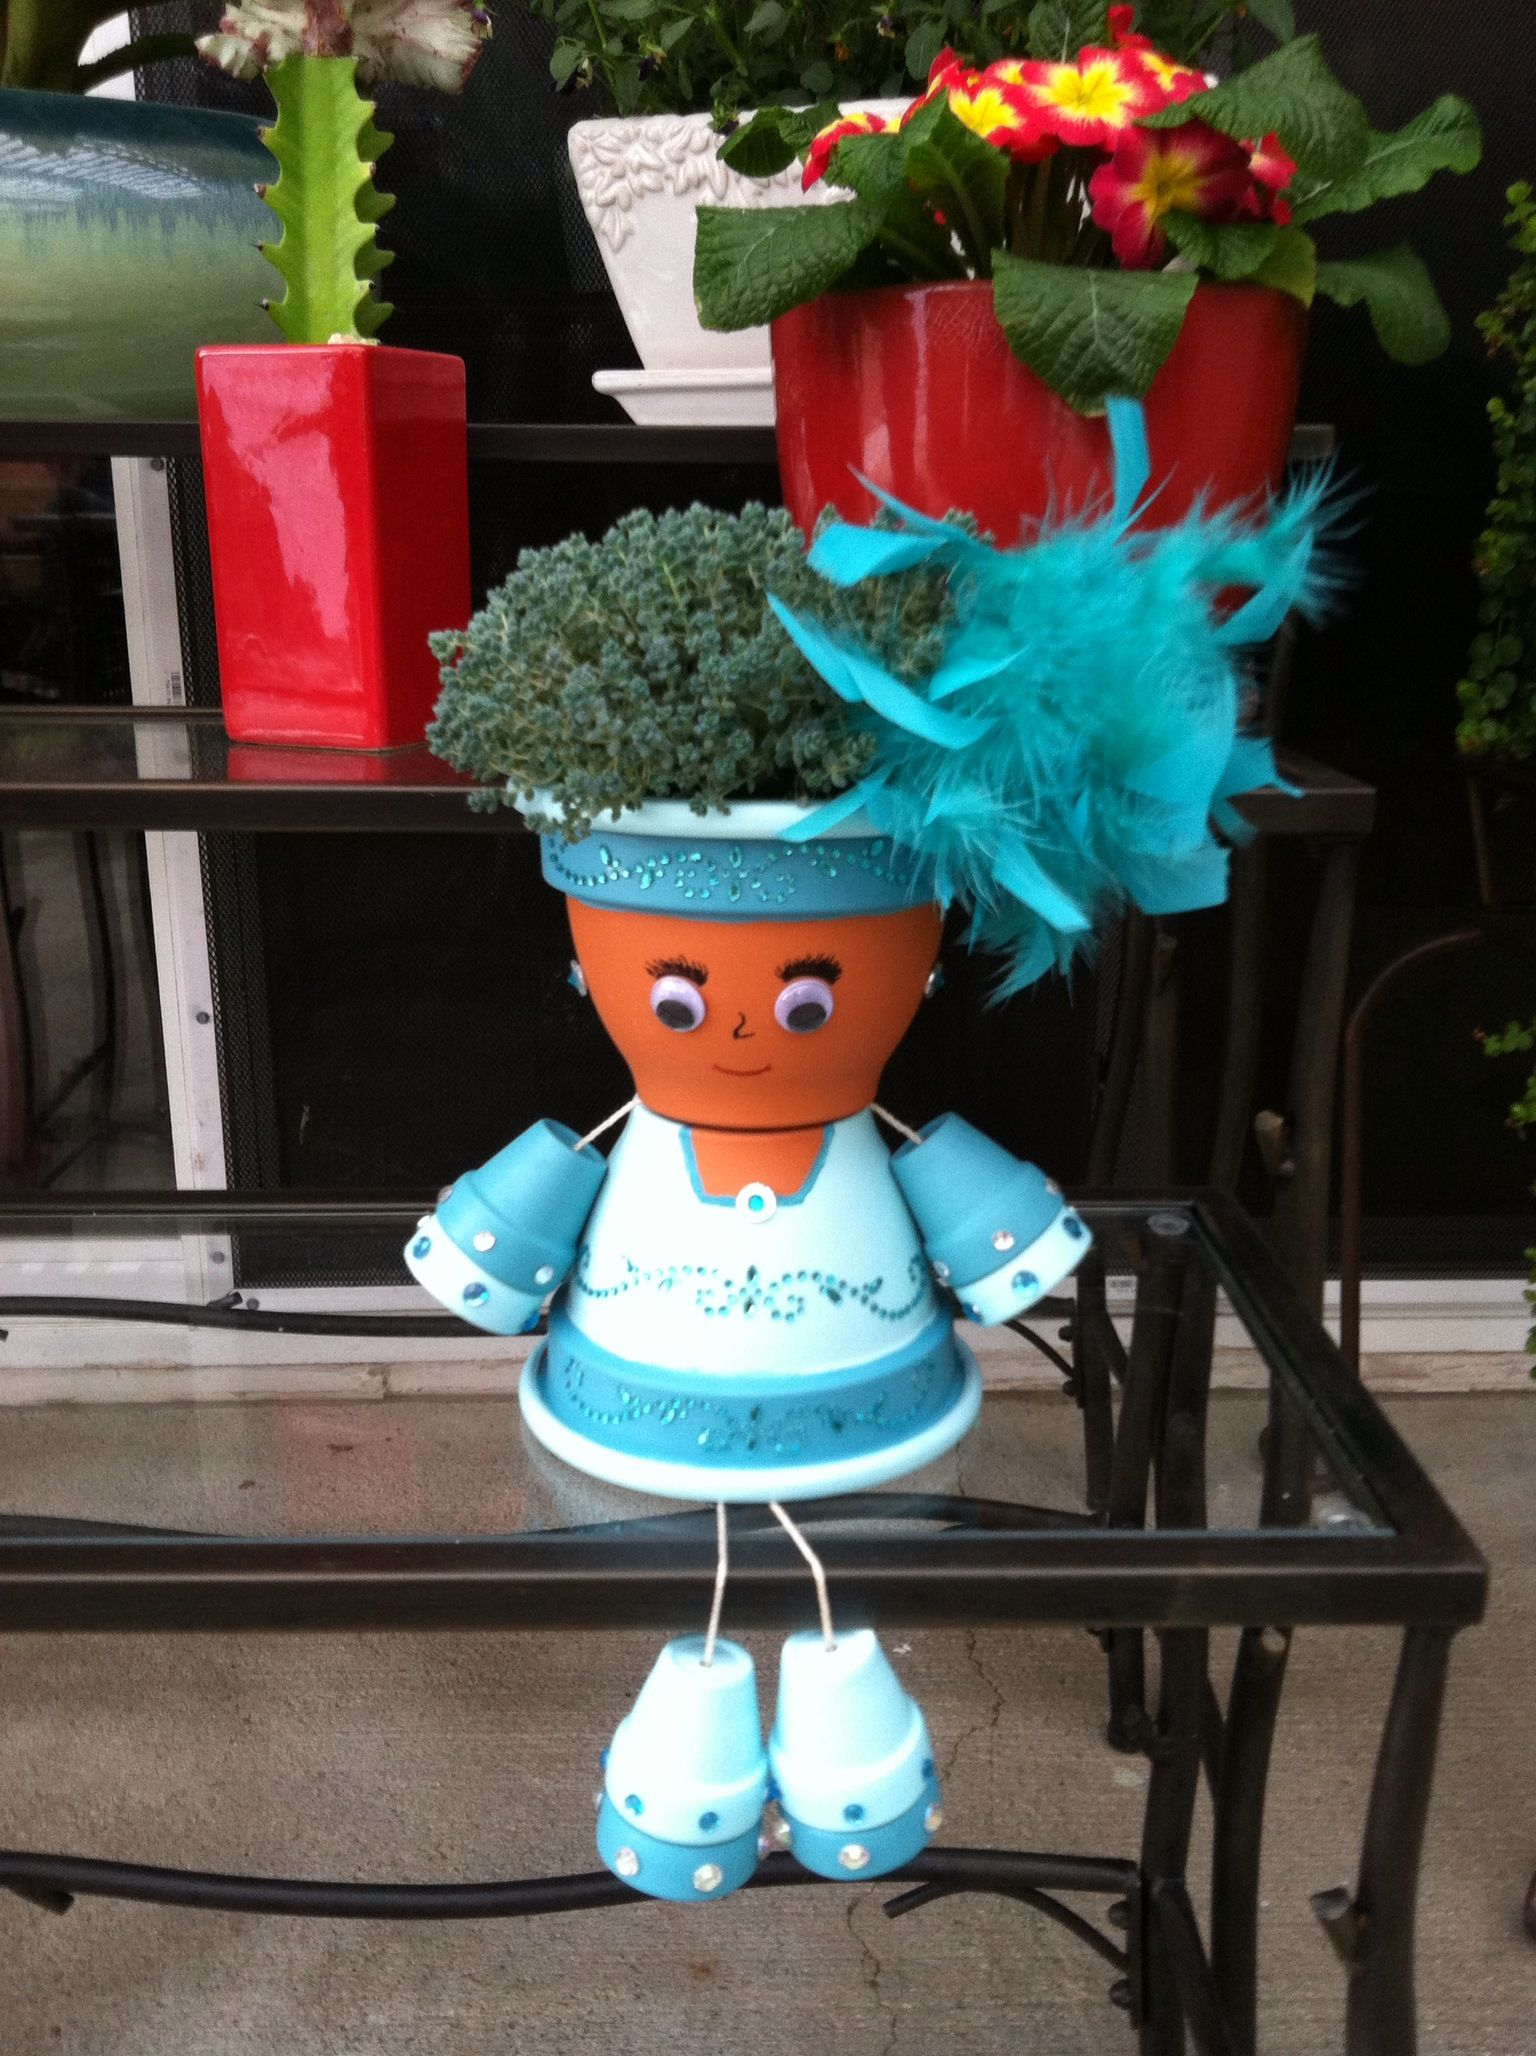 I Had So Much Fun Making My Lady With Bling Love Her Look Terra Cotta Pot Crafts Clay Pot Crafts Flower Pot Crafts